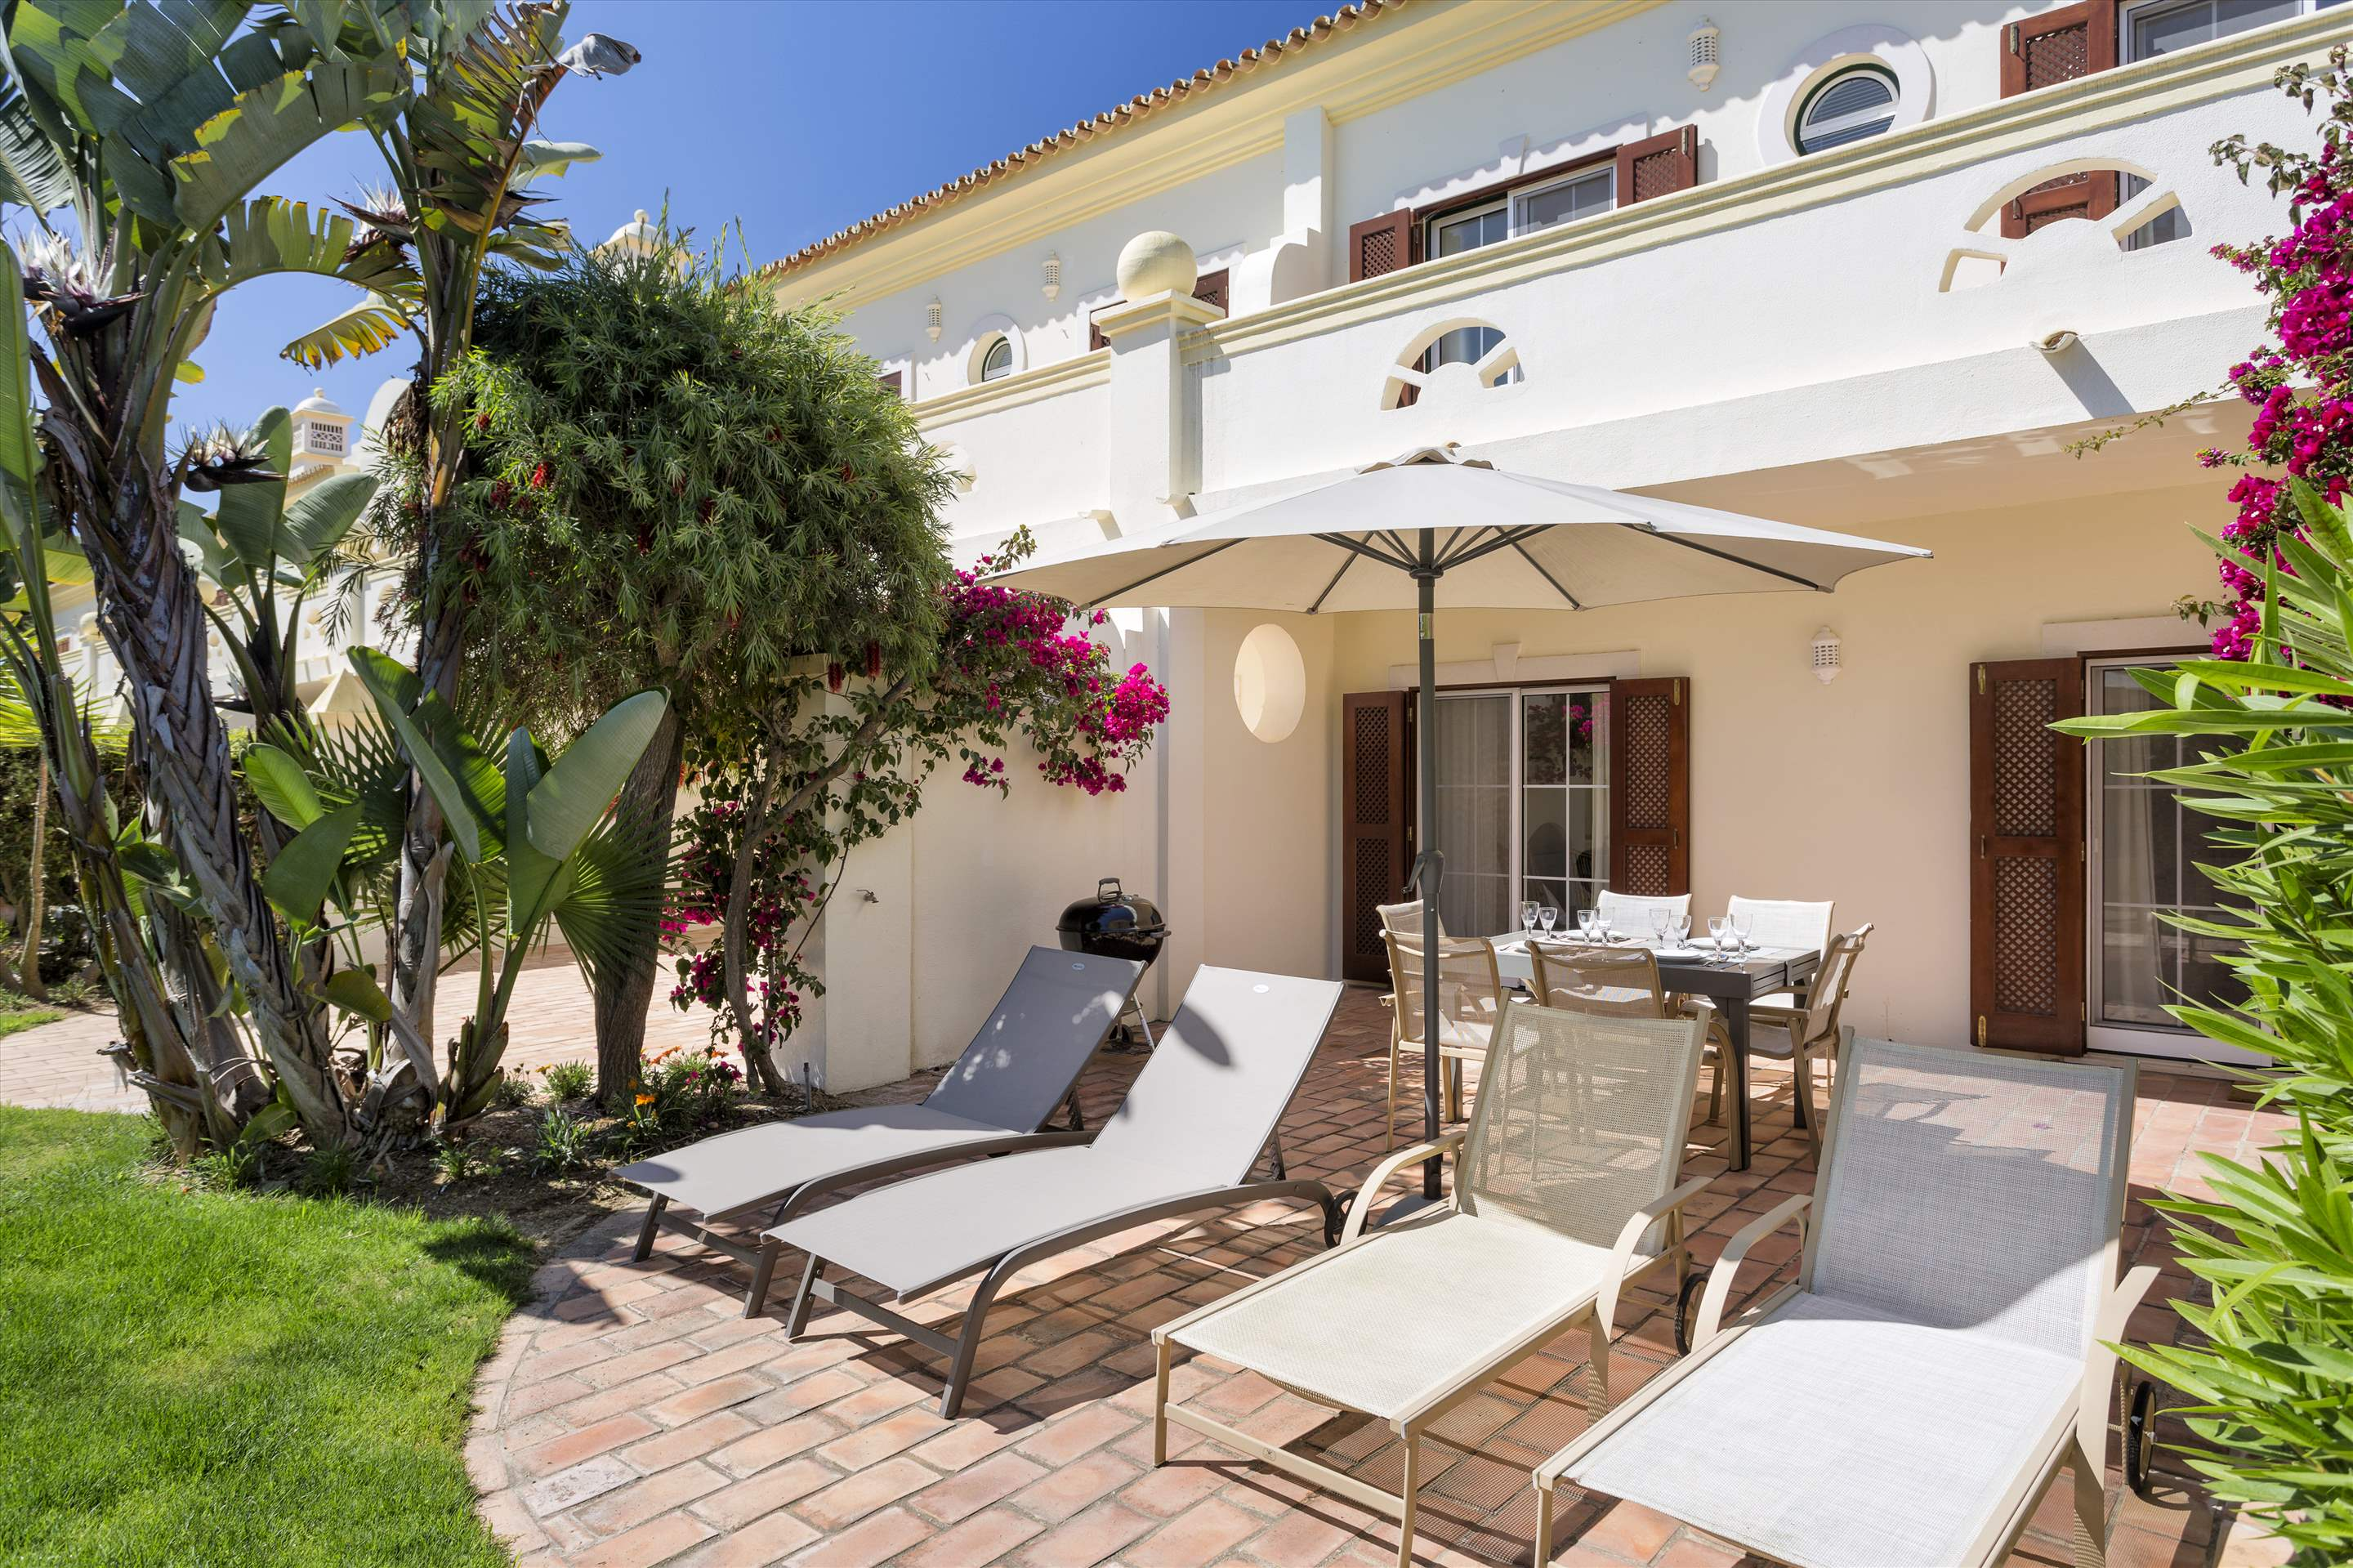 Townhouse Jessica, 3 bedroom villa in Quinta do Lago, Algarve Photo #1